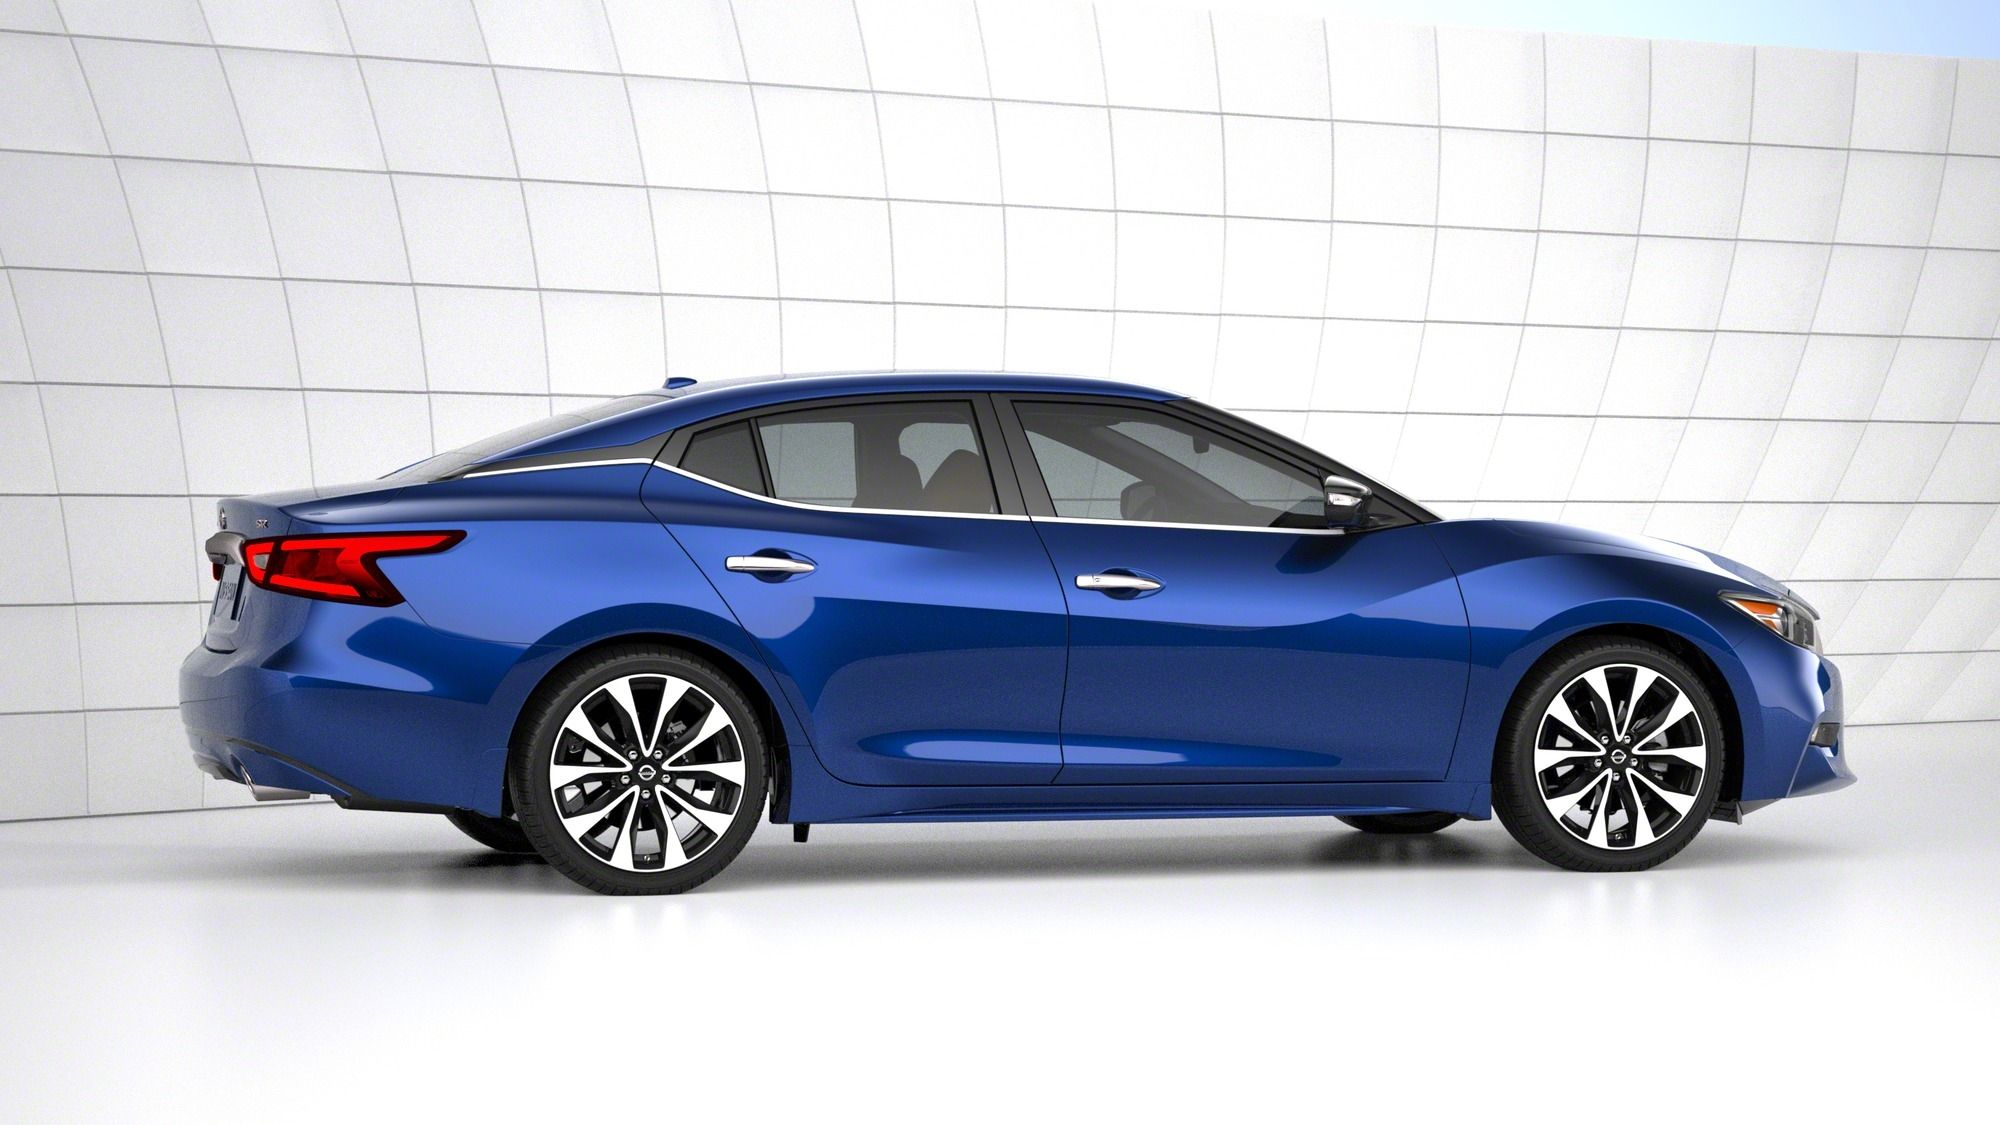 Nissan Maxima: Use of this product implies acceptance of the terms below